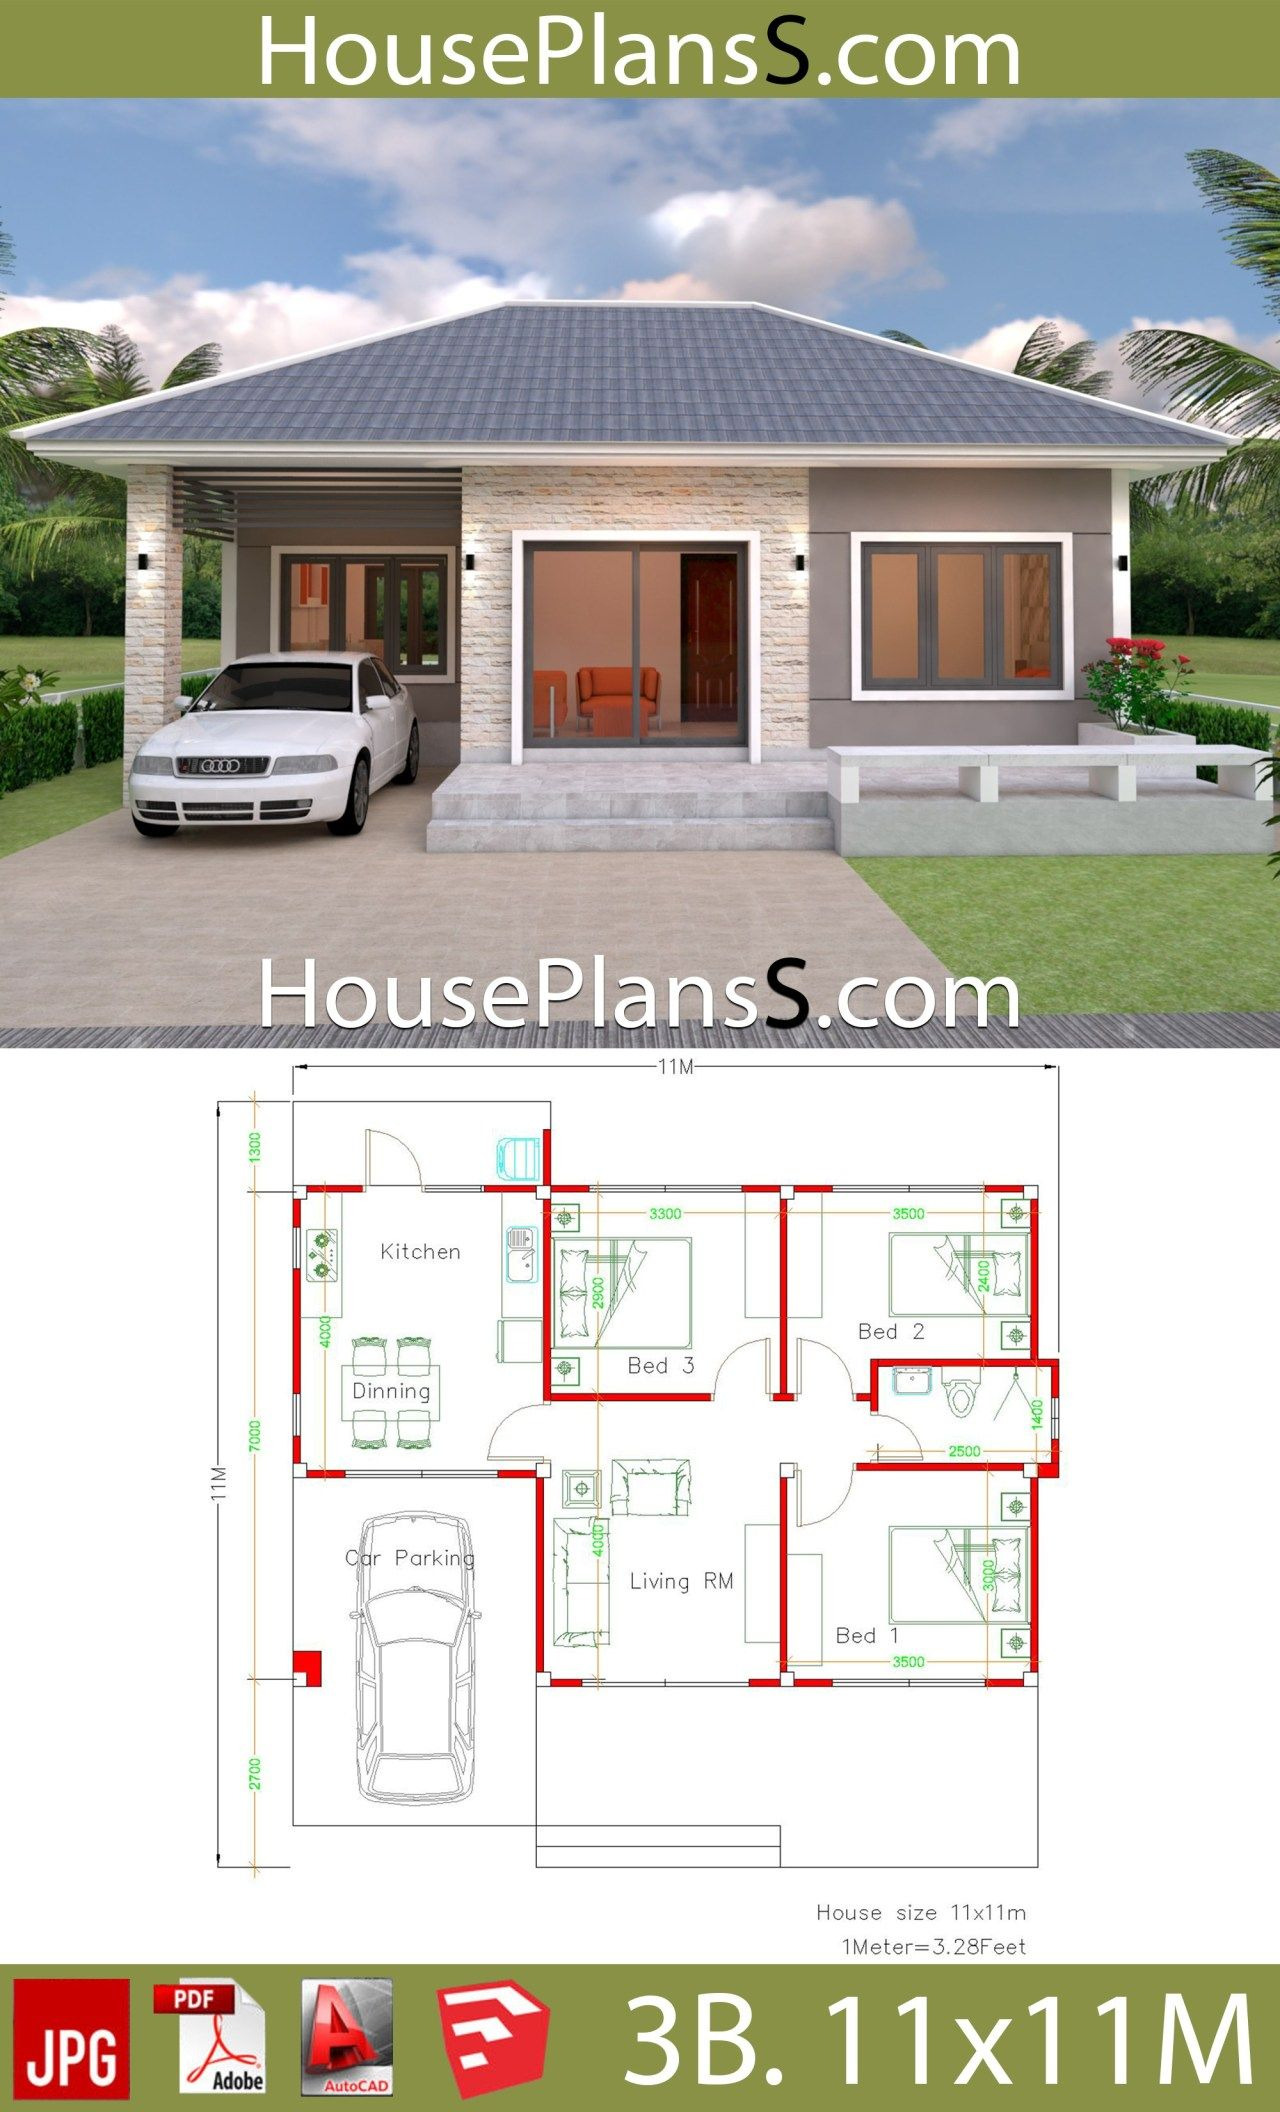 Simple Small House Design Unique Simple House Design Plans 11x11 with 3 Bedrooms Full Plans